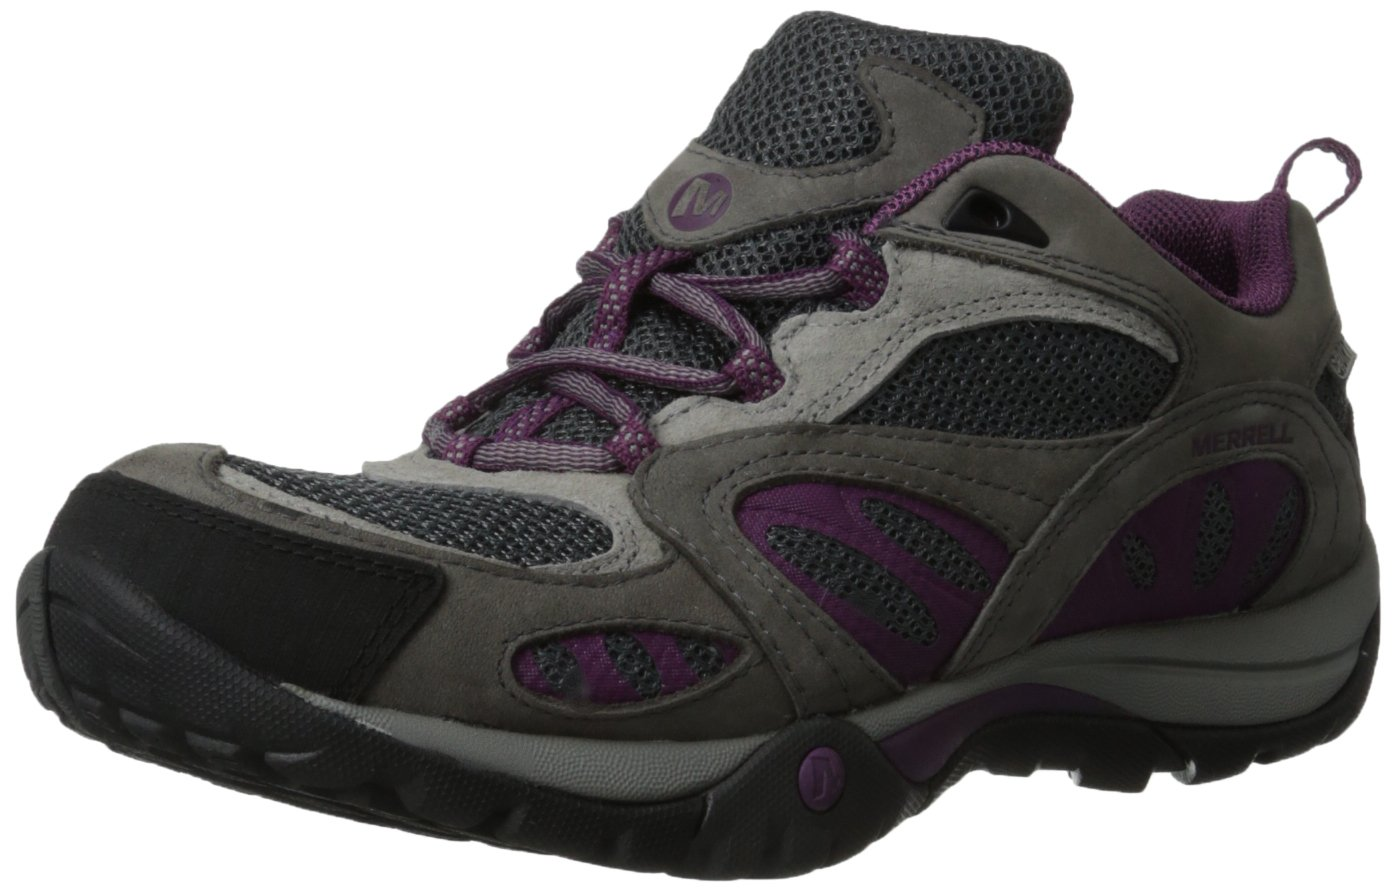 Merrell Women's Azura Waterproof Hiking Shoe B00D1PA98E 7.5 B(M) US|Castle Rock/Purple